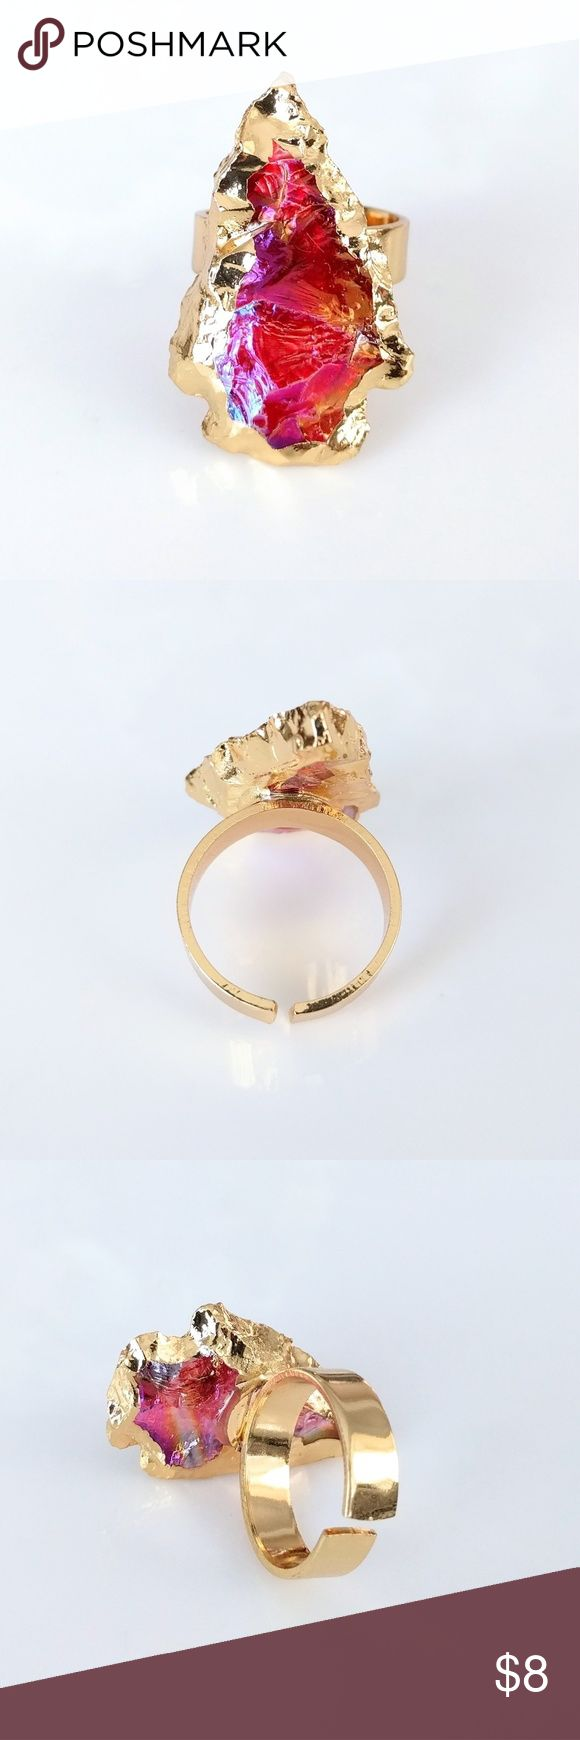 """Gold-plated carved aura quartz arrowhead ring Nickel and lead free.  Genuine stone.  About a size 7 but can adjust slightly.  PRICE IS FIRM and extremely reasonable; click """"add to bundle"""" to save 10% on your purchase of 2+ items today! Jewelry Rings"""